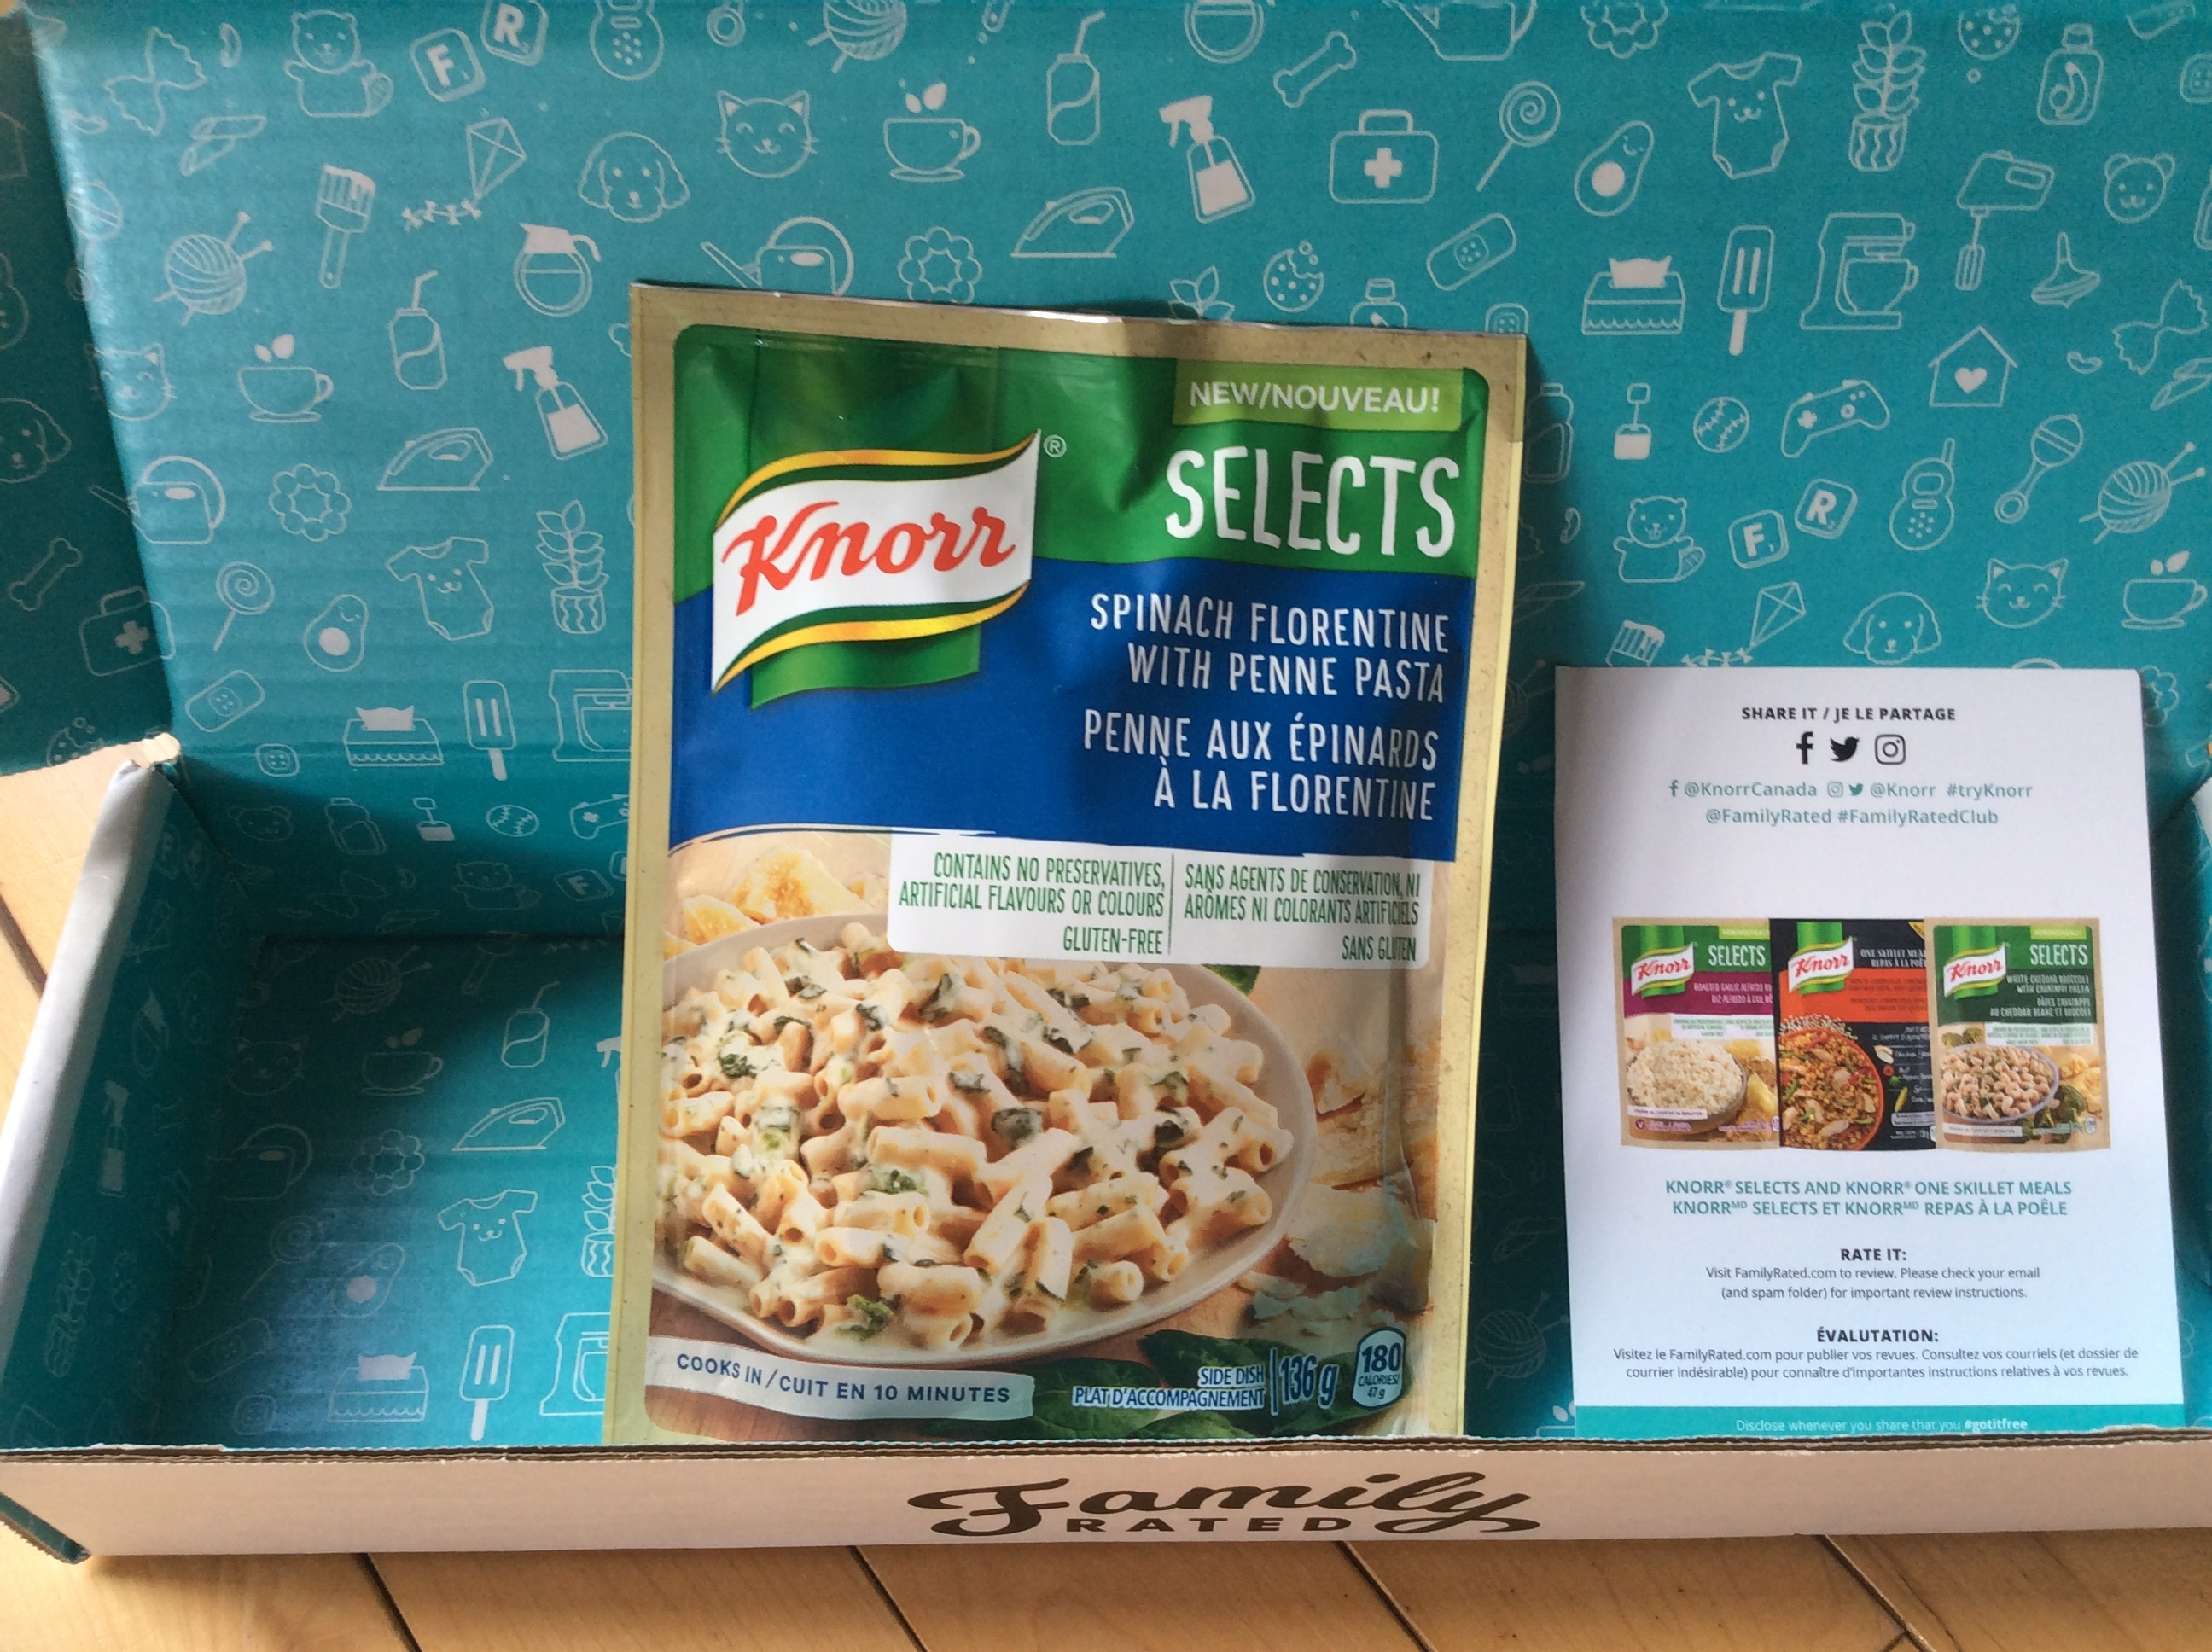 Knorr Selects Spinach Florentine With Penne Pasta Reviews